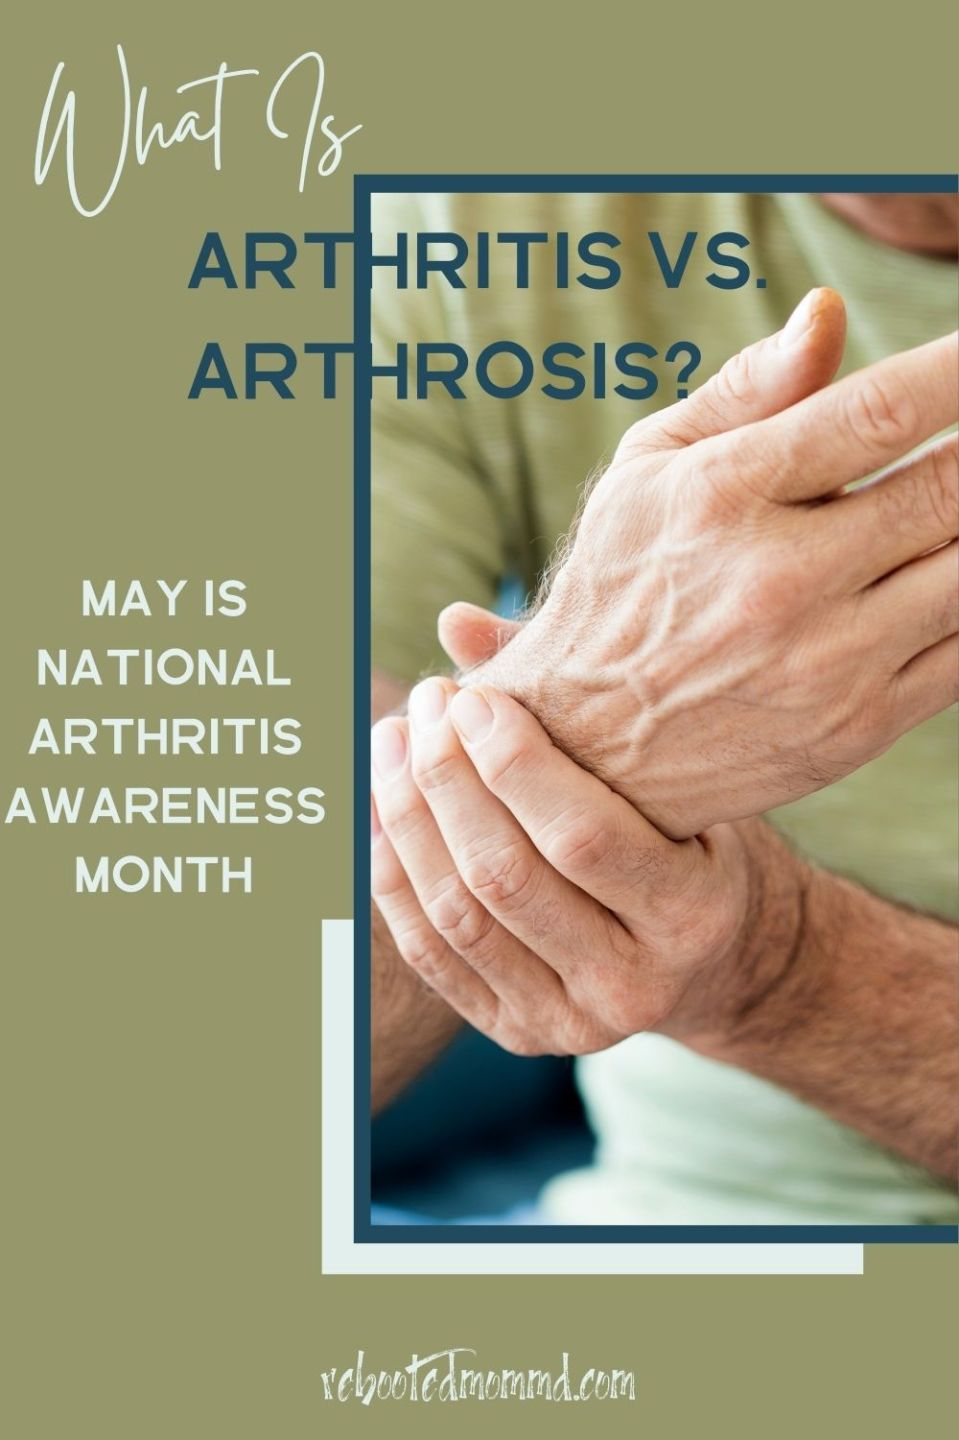 What Is The Difference Between Arthritis and Arthrosis?